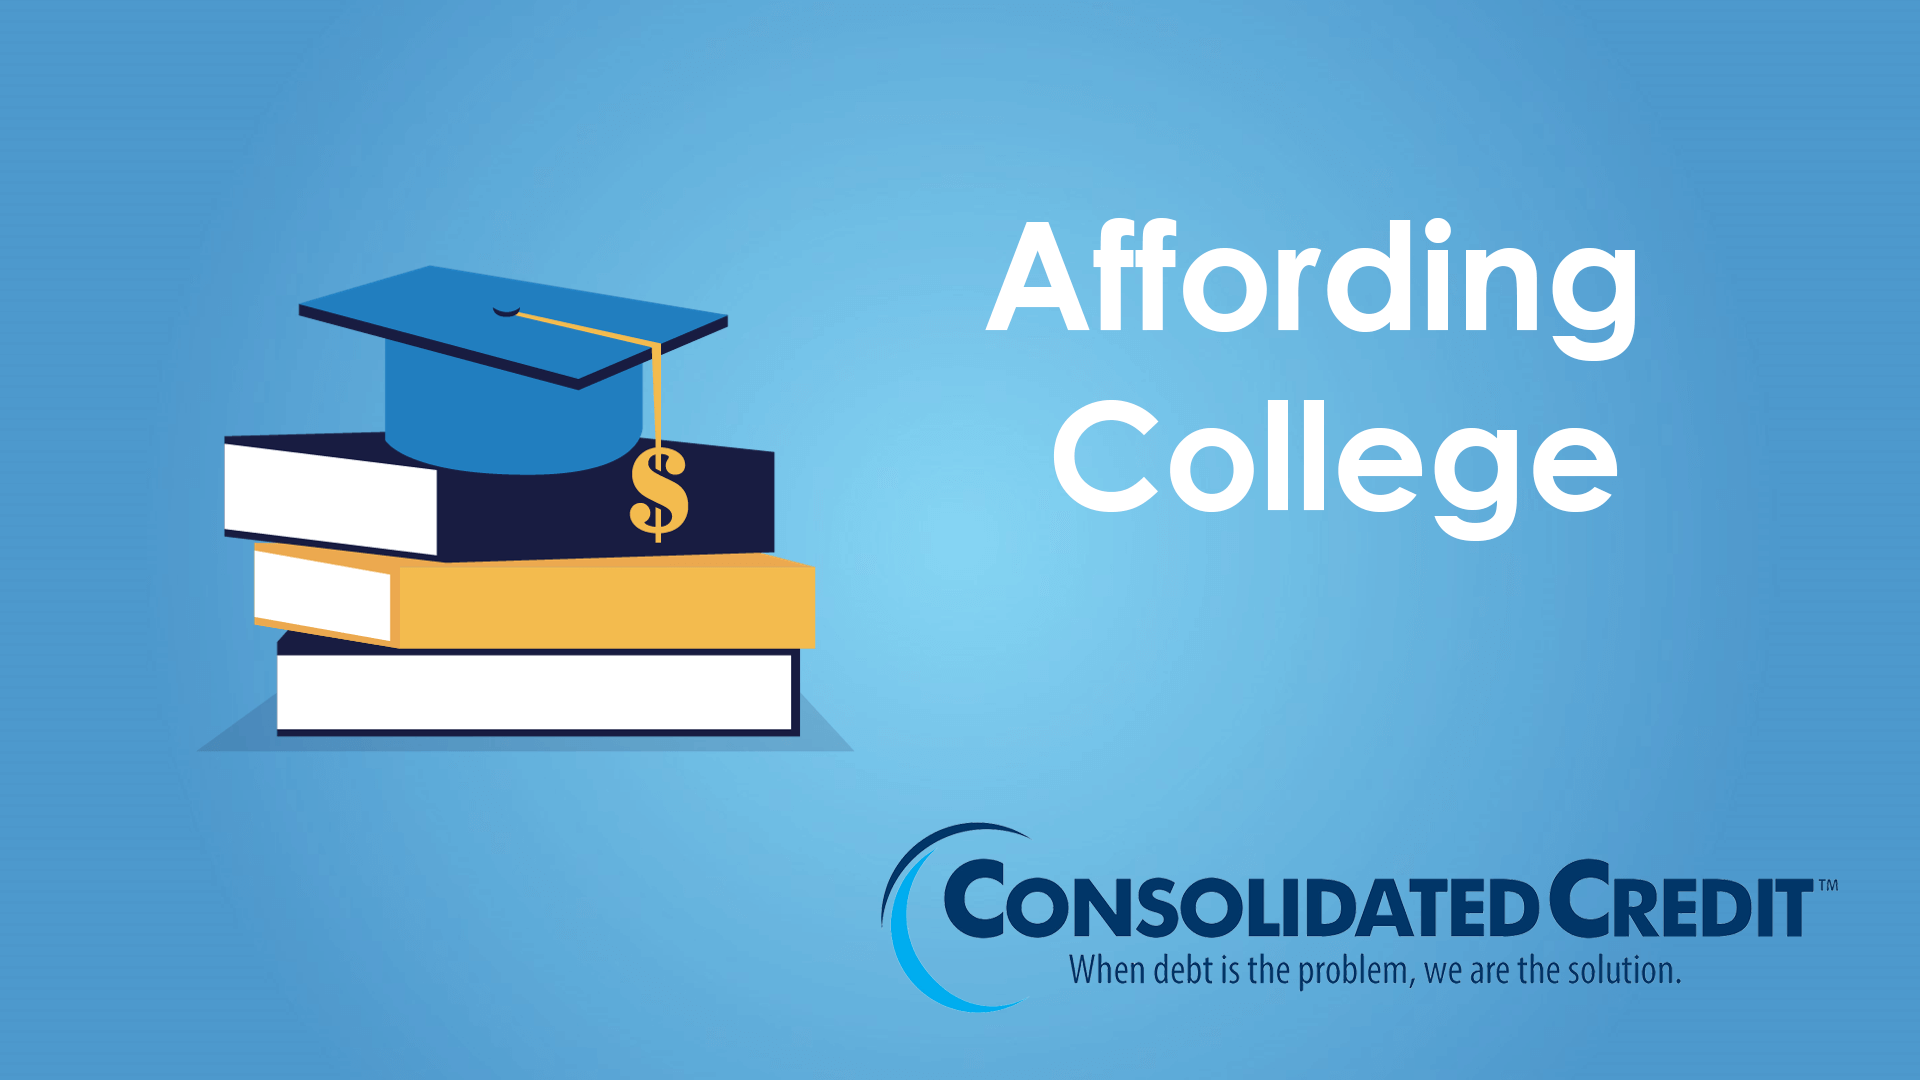 https://www.consolidatedcredit.org/wp-content/uploads/2018/05/Affording-College-Thumbnail-1.png